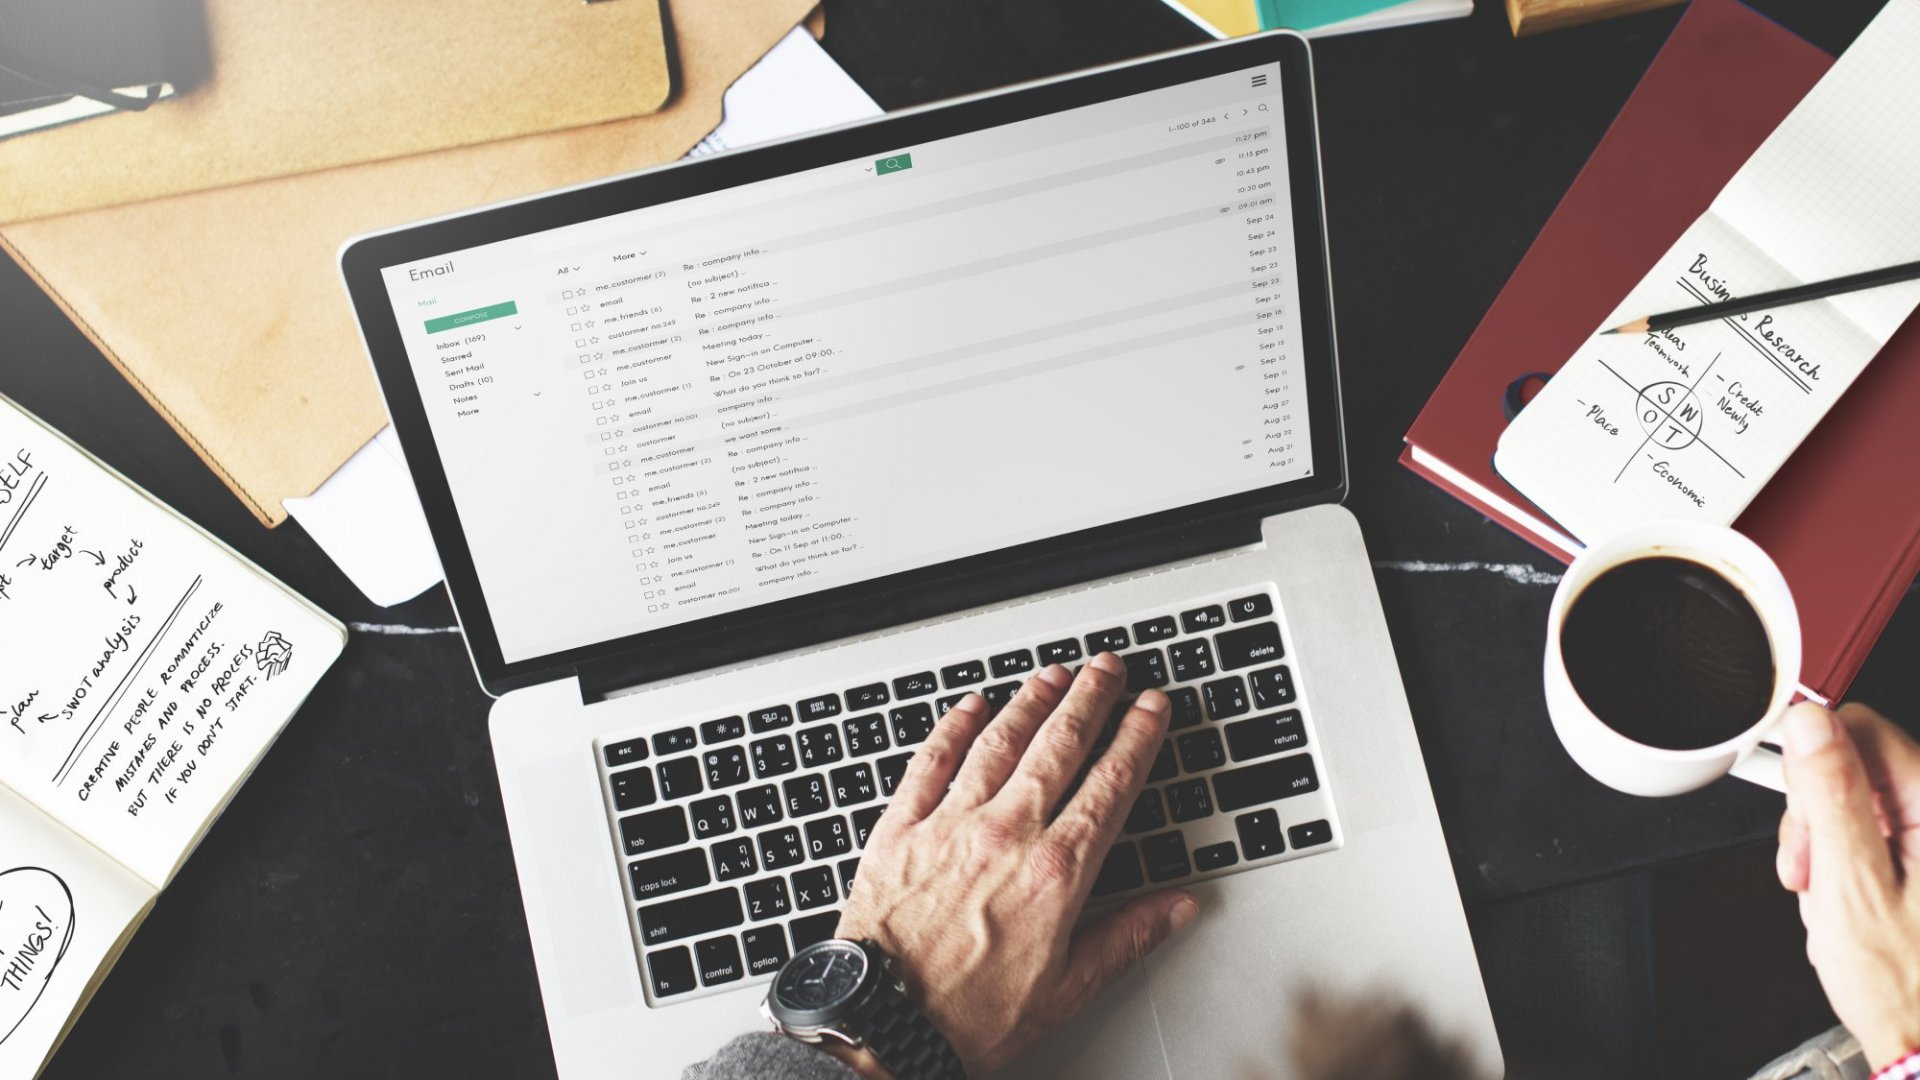 How to Write a Proper Follow-Up Email After You've Been 'Ghosted'